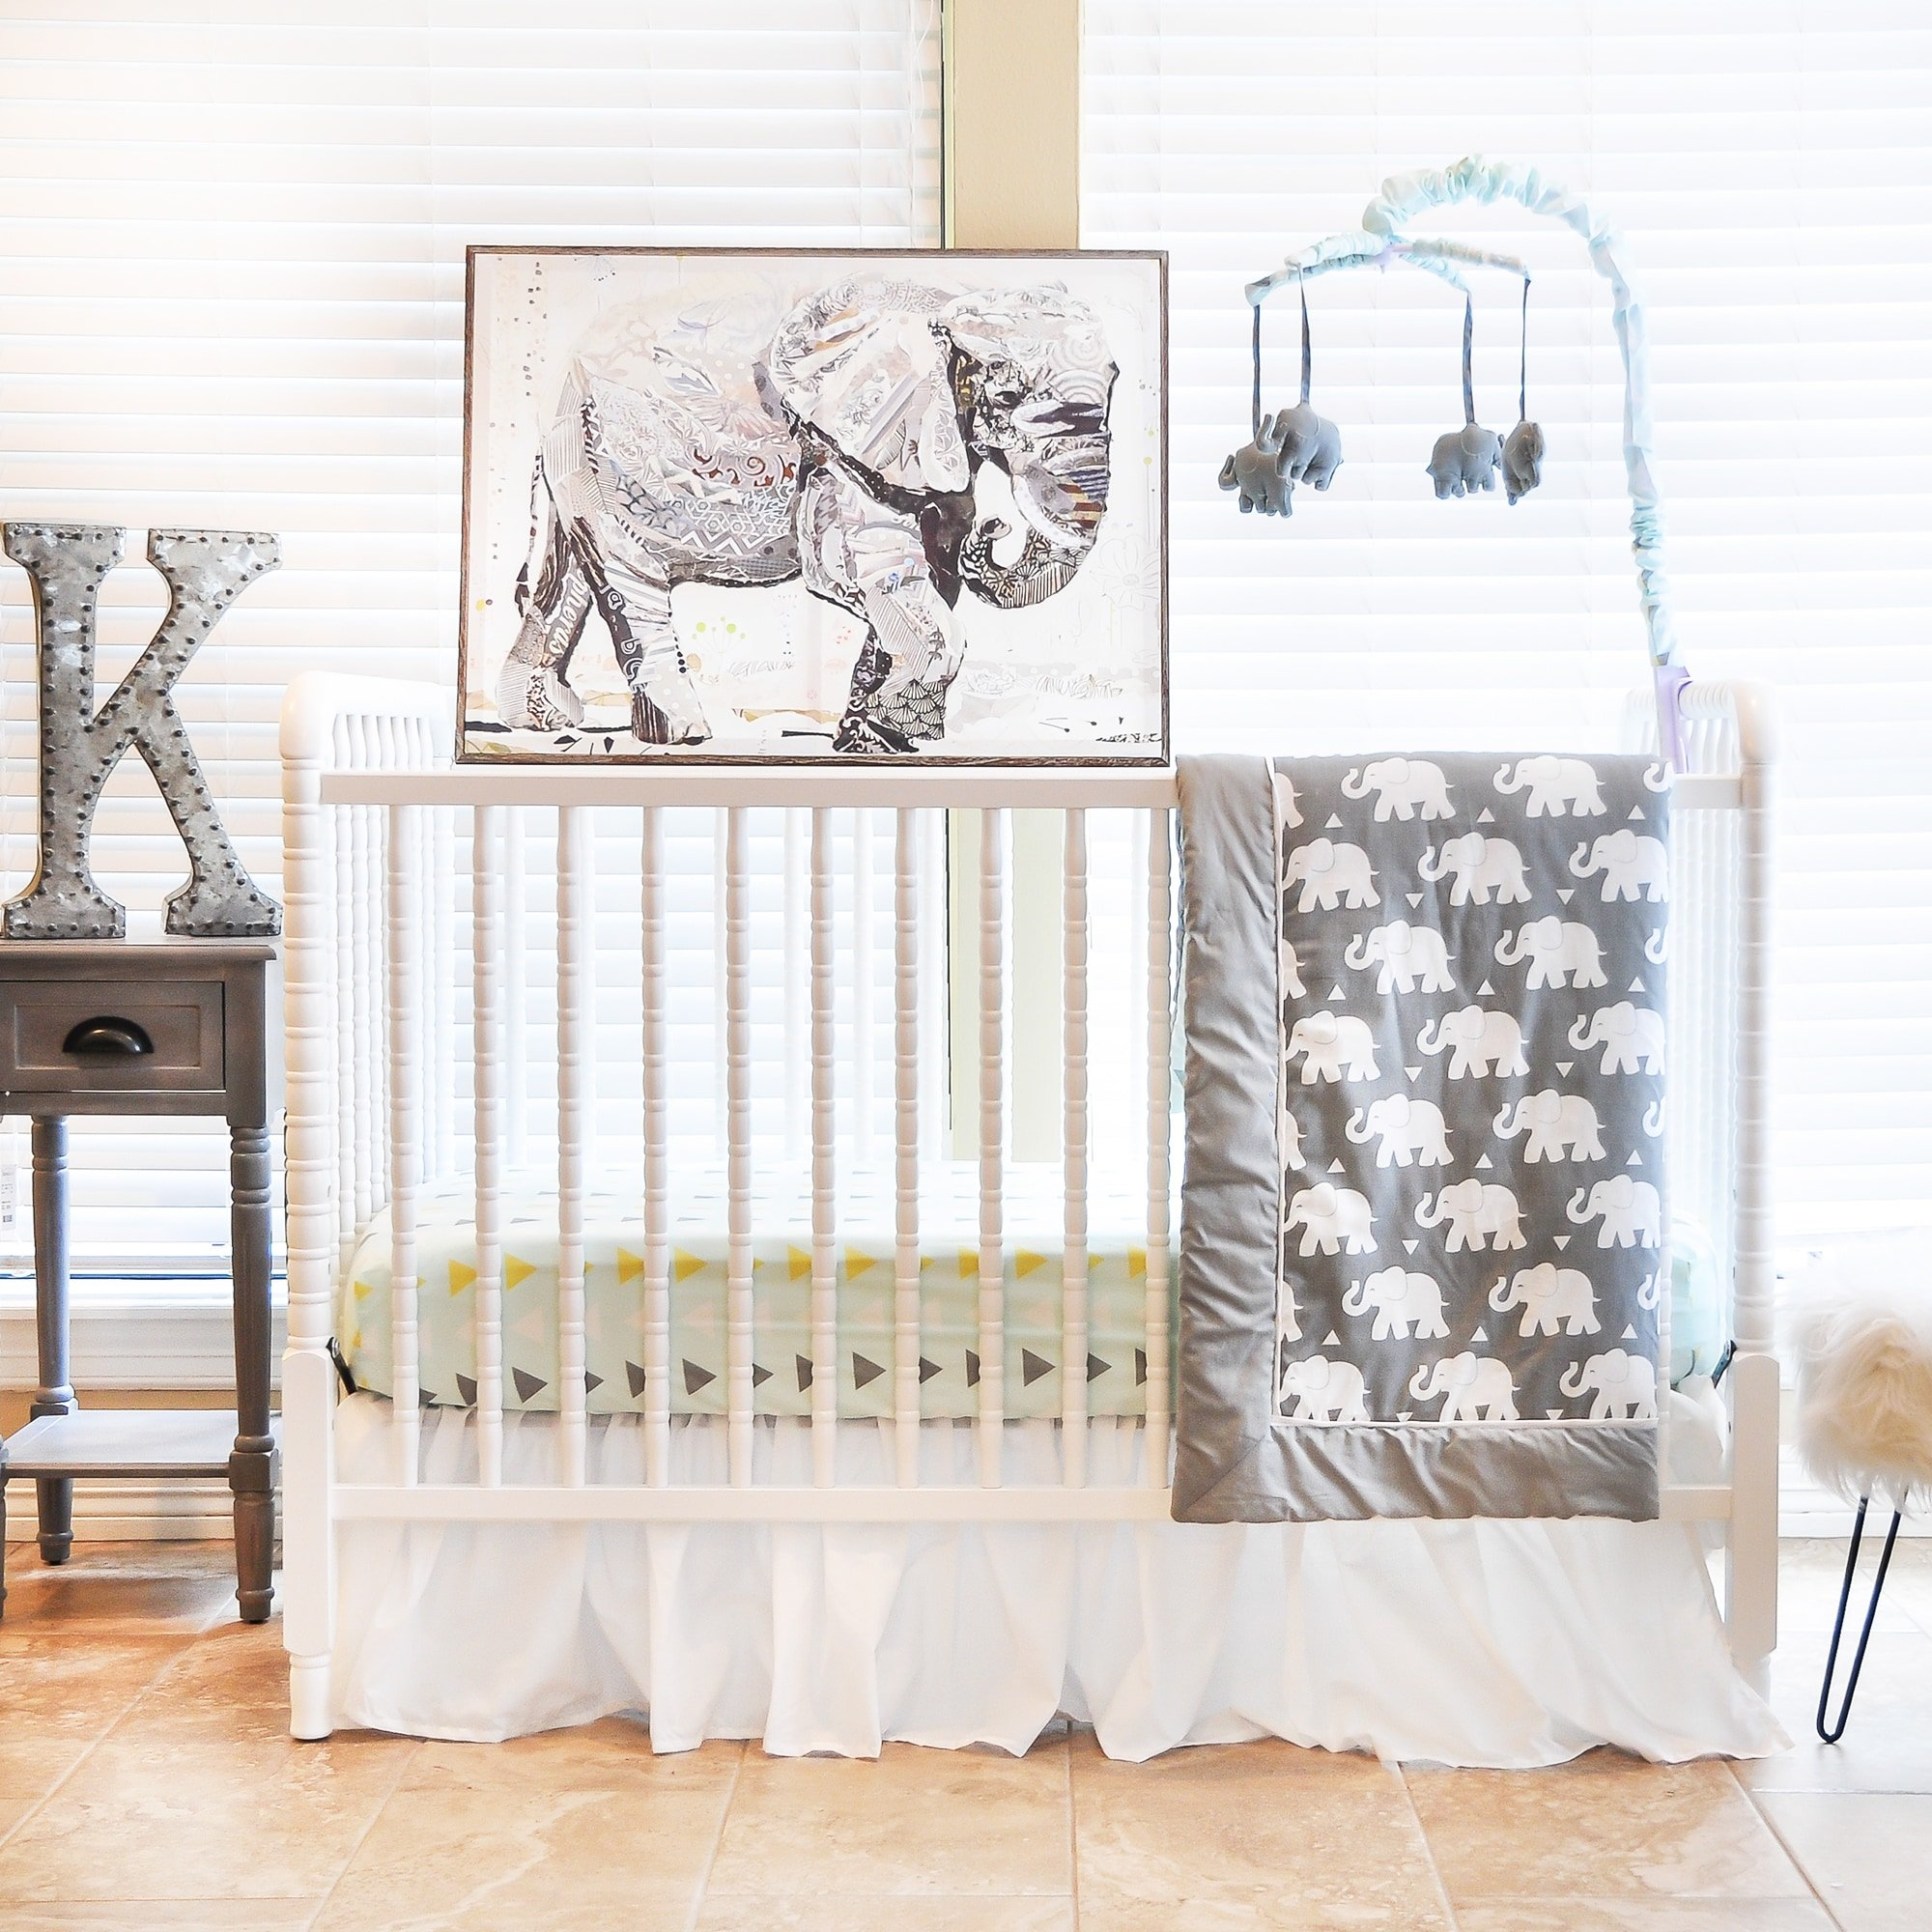 UK 6 Piece White Grey Yellow Baby Elephant Crib Bedding Set, Newborn Animal Themed Nursery Bed Set Infant Child Zoo Jungle Africa Trendy Chic Cute Blanket Quilt Triangle Pattern, Polyester Cotton